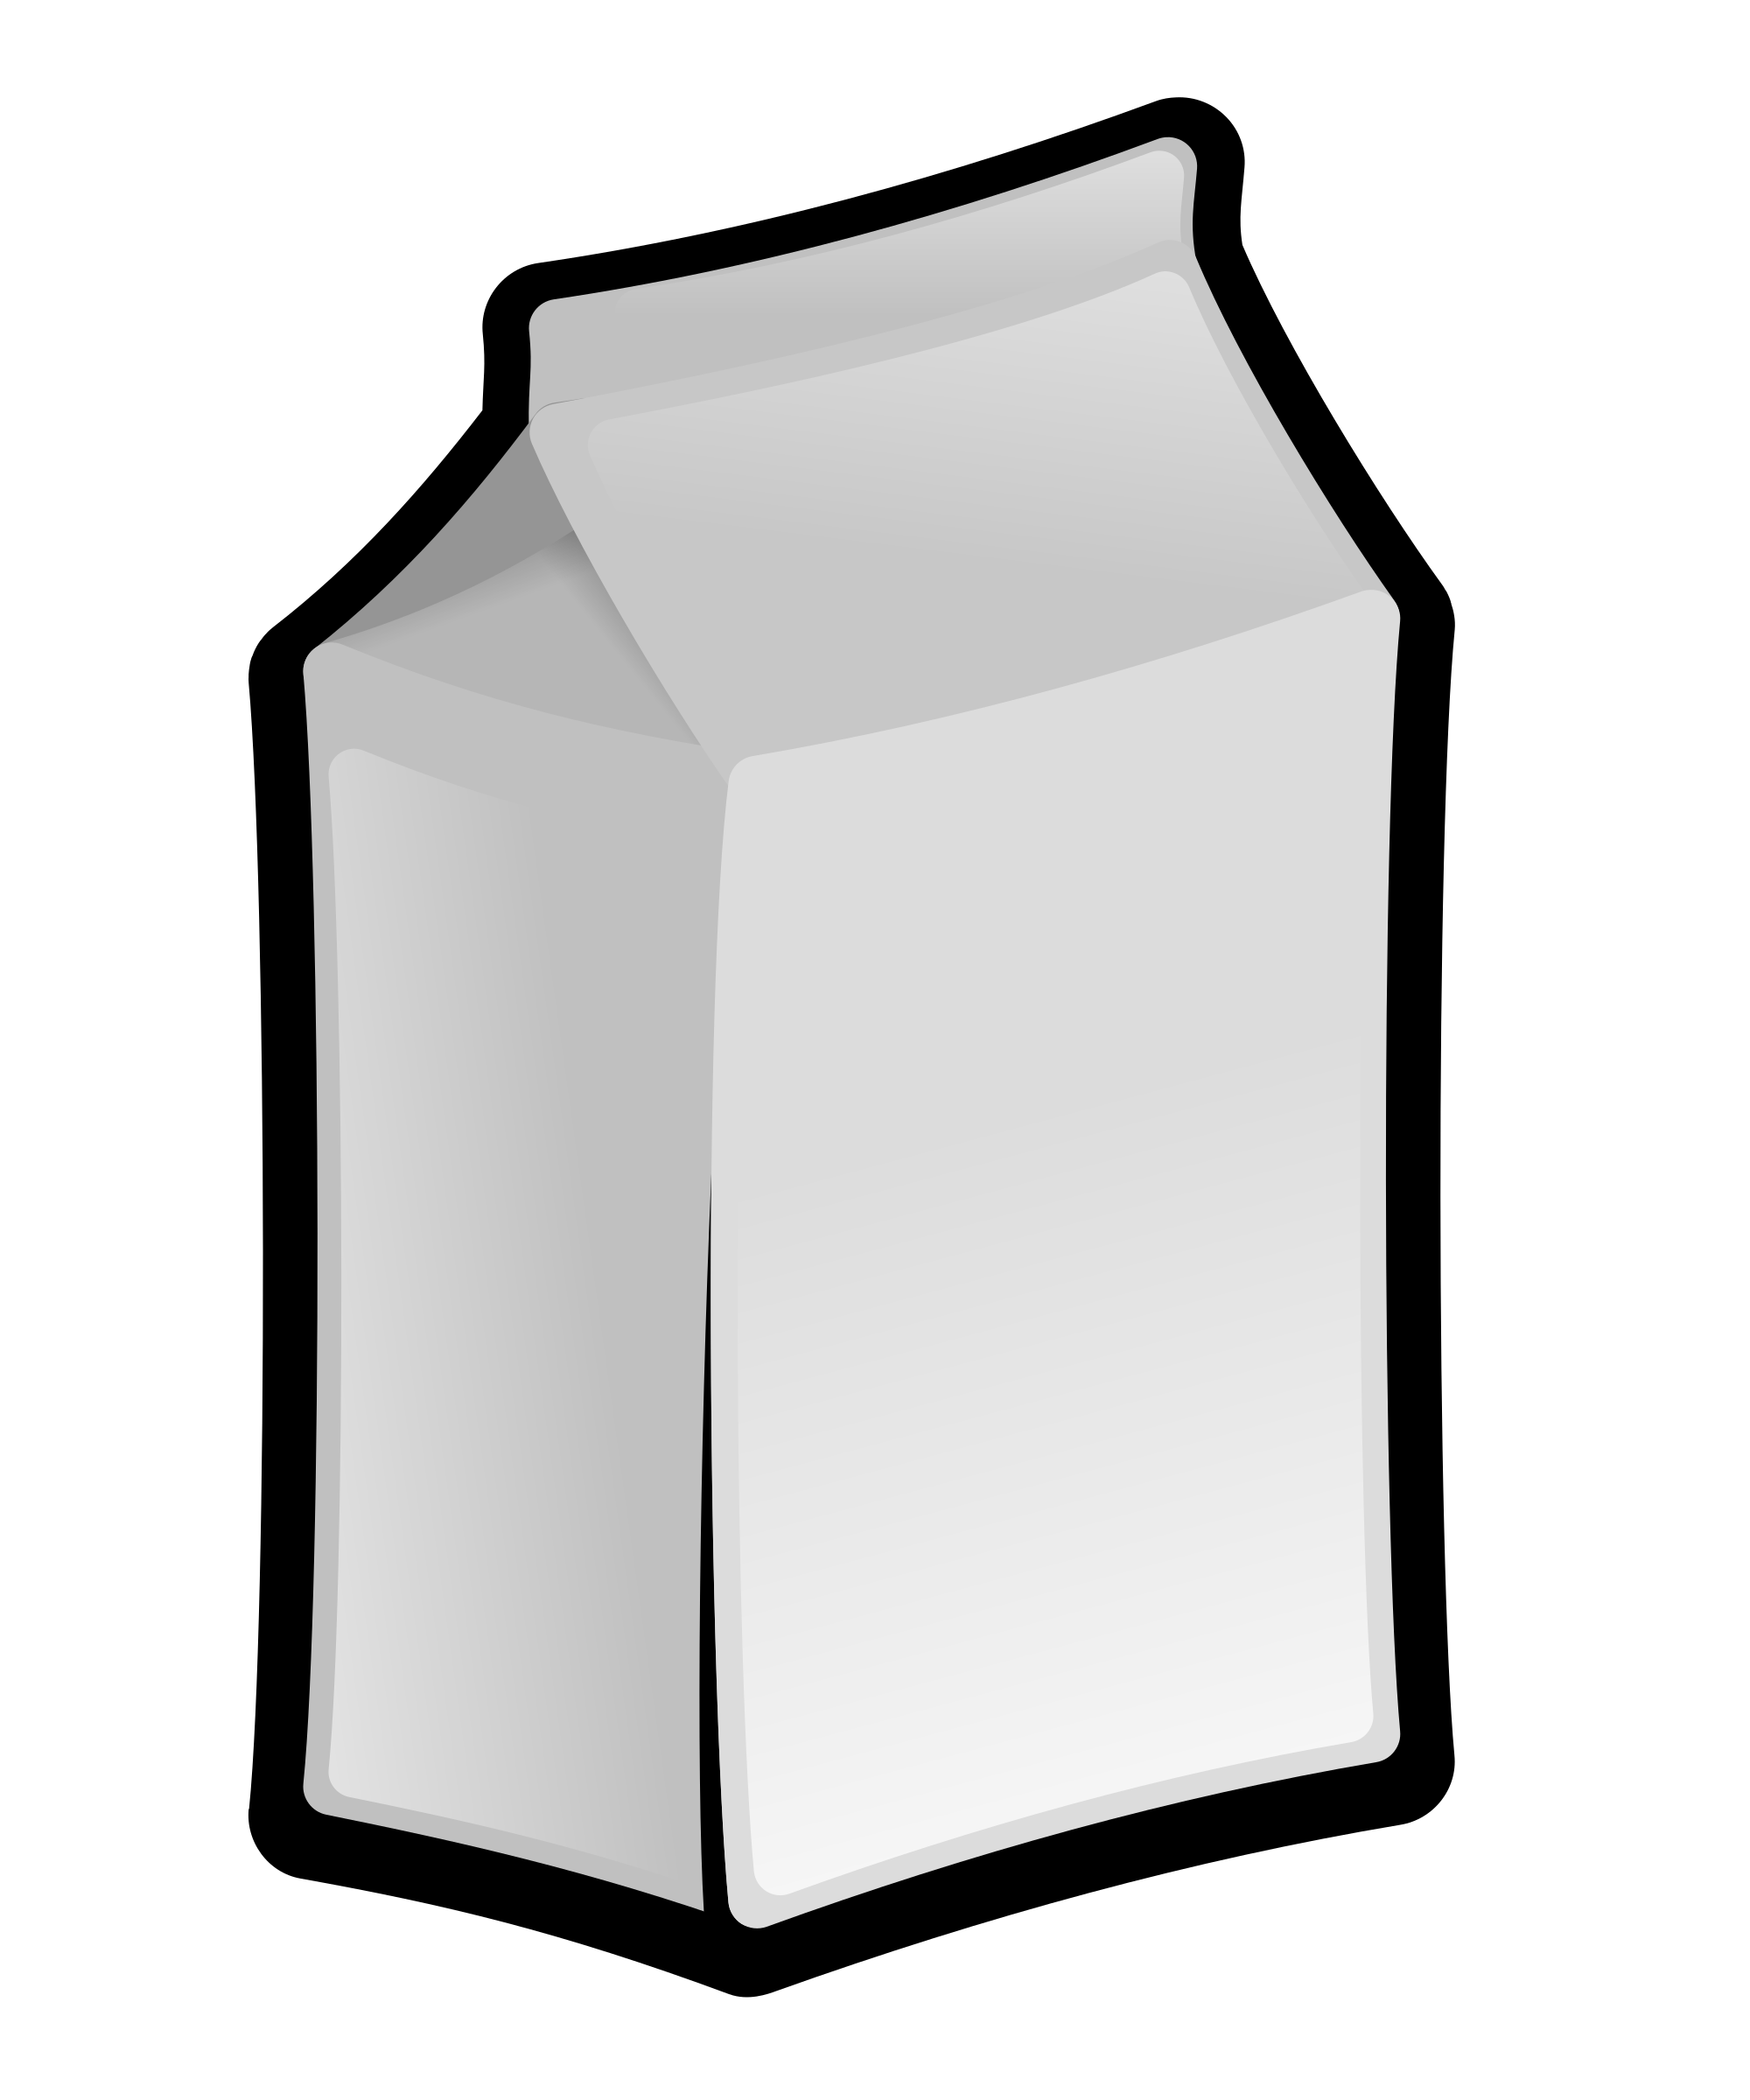 Milk box by jonata